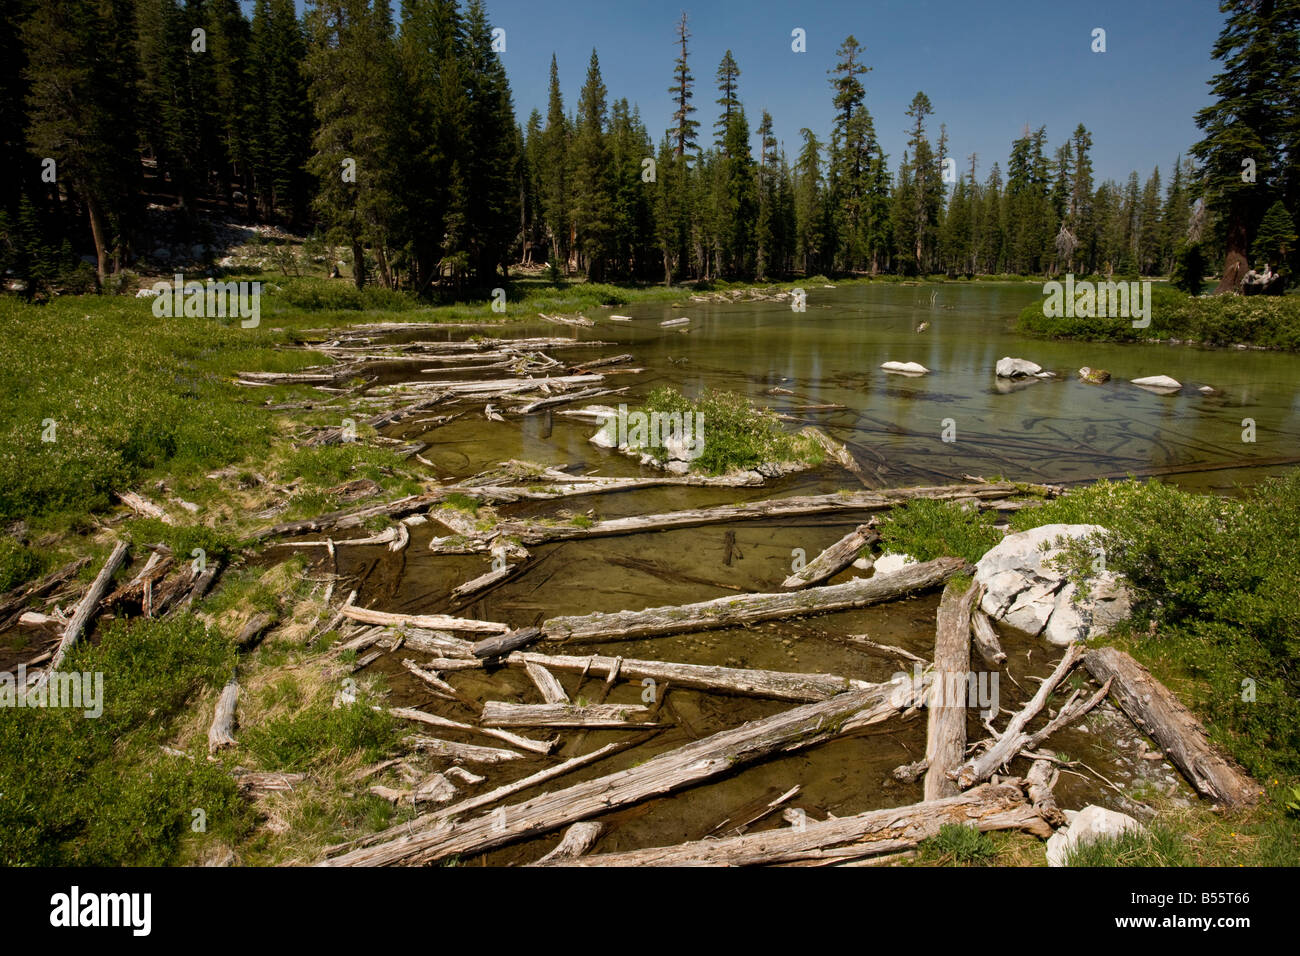 Fallen trees from old avalanche in Cliff Lake Lassen National Park California - Stock Image